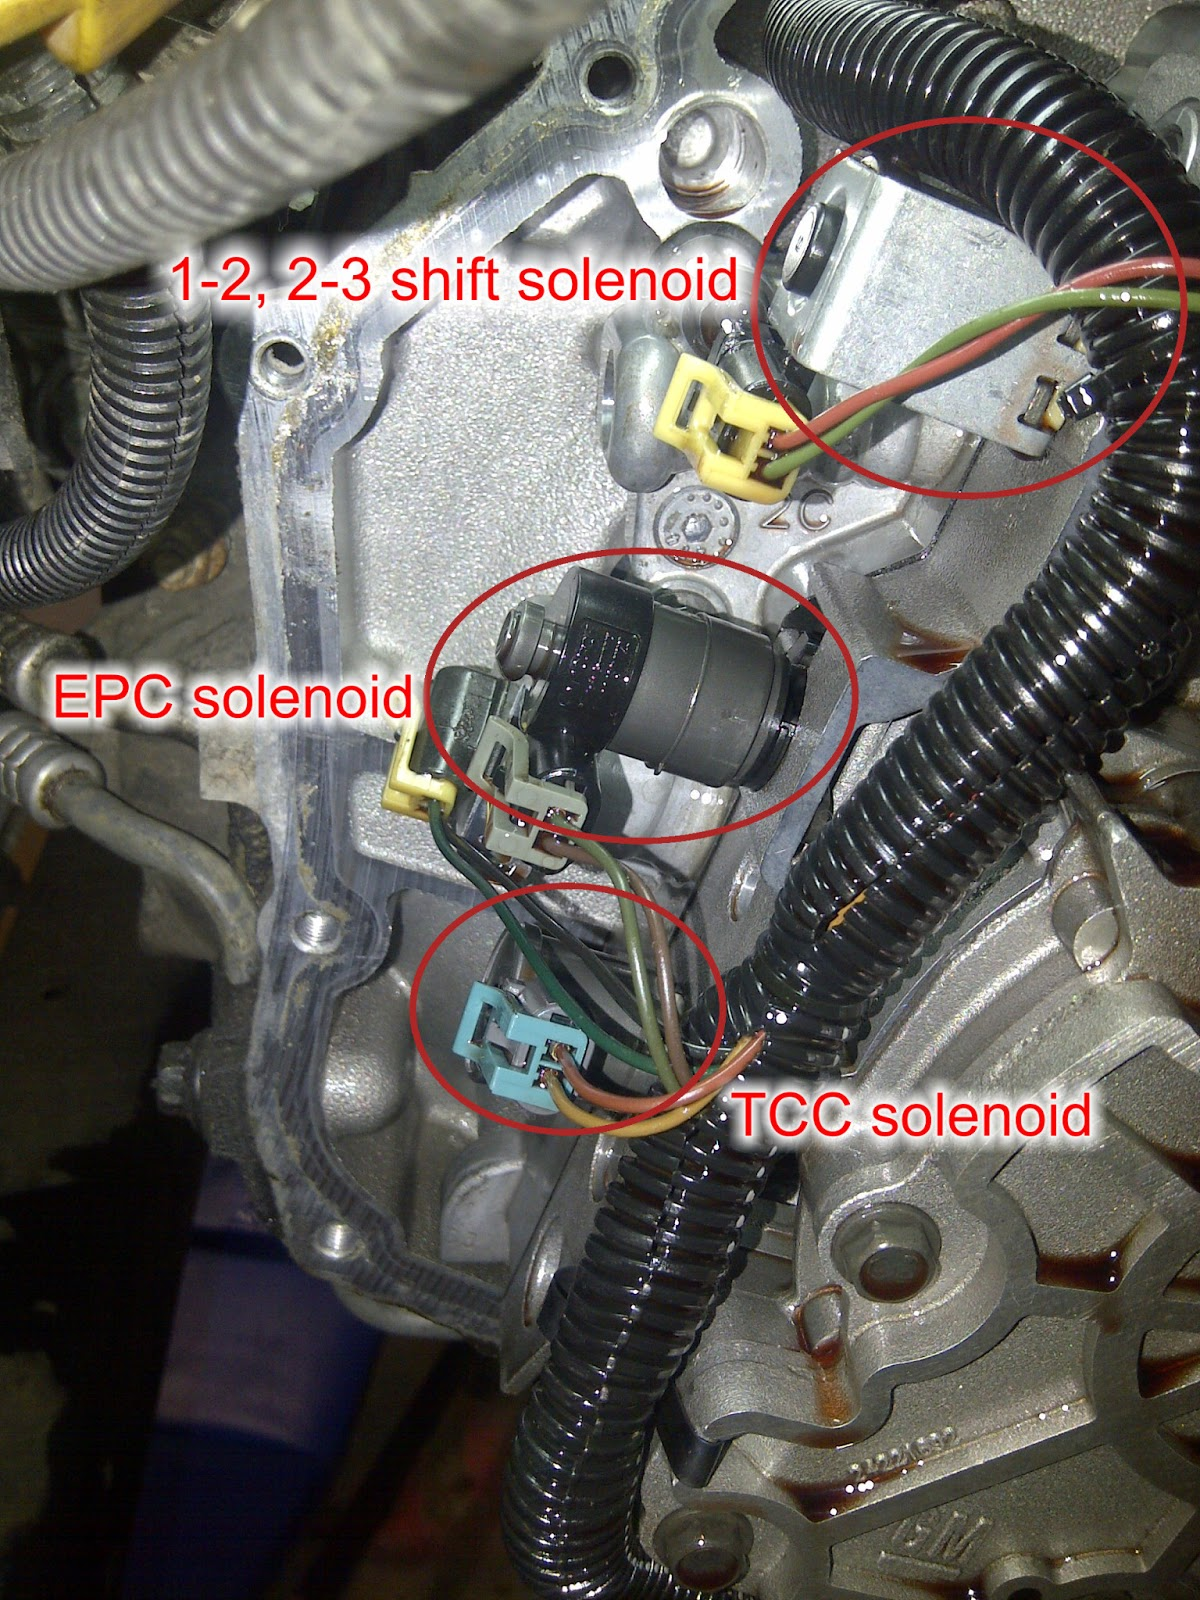 wiring diagram for 4l60e transmission roc grp org at 3 of the 4 solenoids i replaced [ 1200 x 1600 Pixel ]